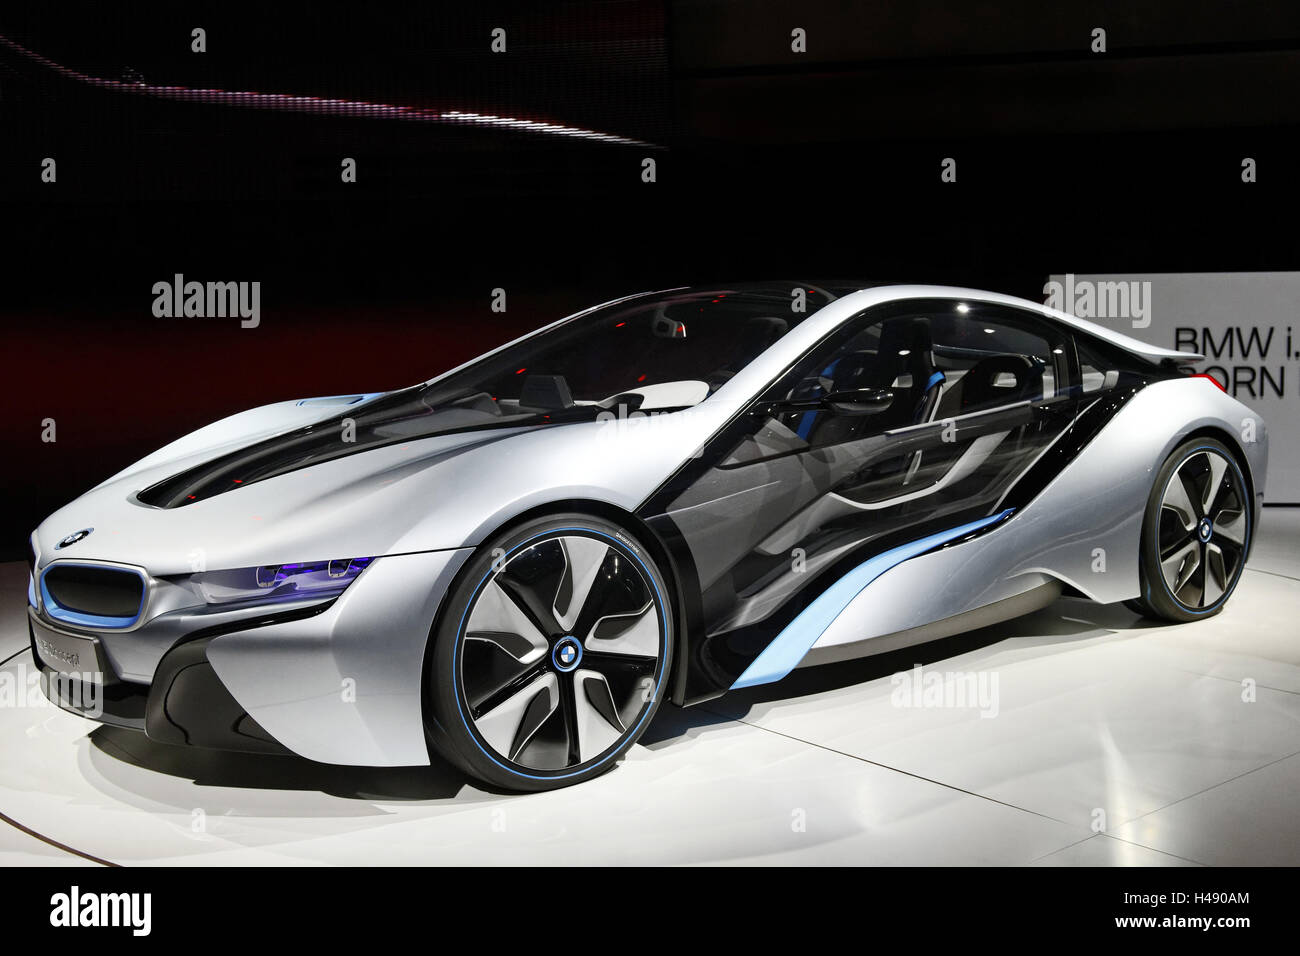 Bmw I8 Concept Hybrid Sports Car Design International Motor Show